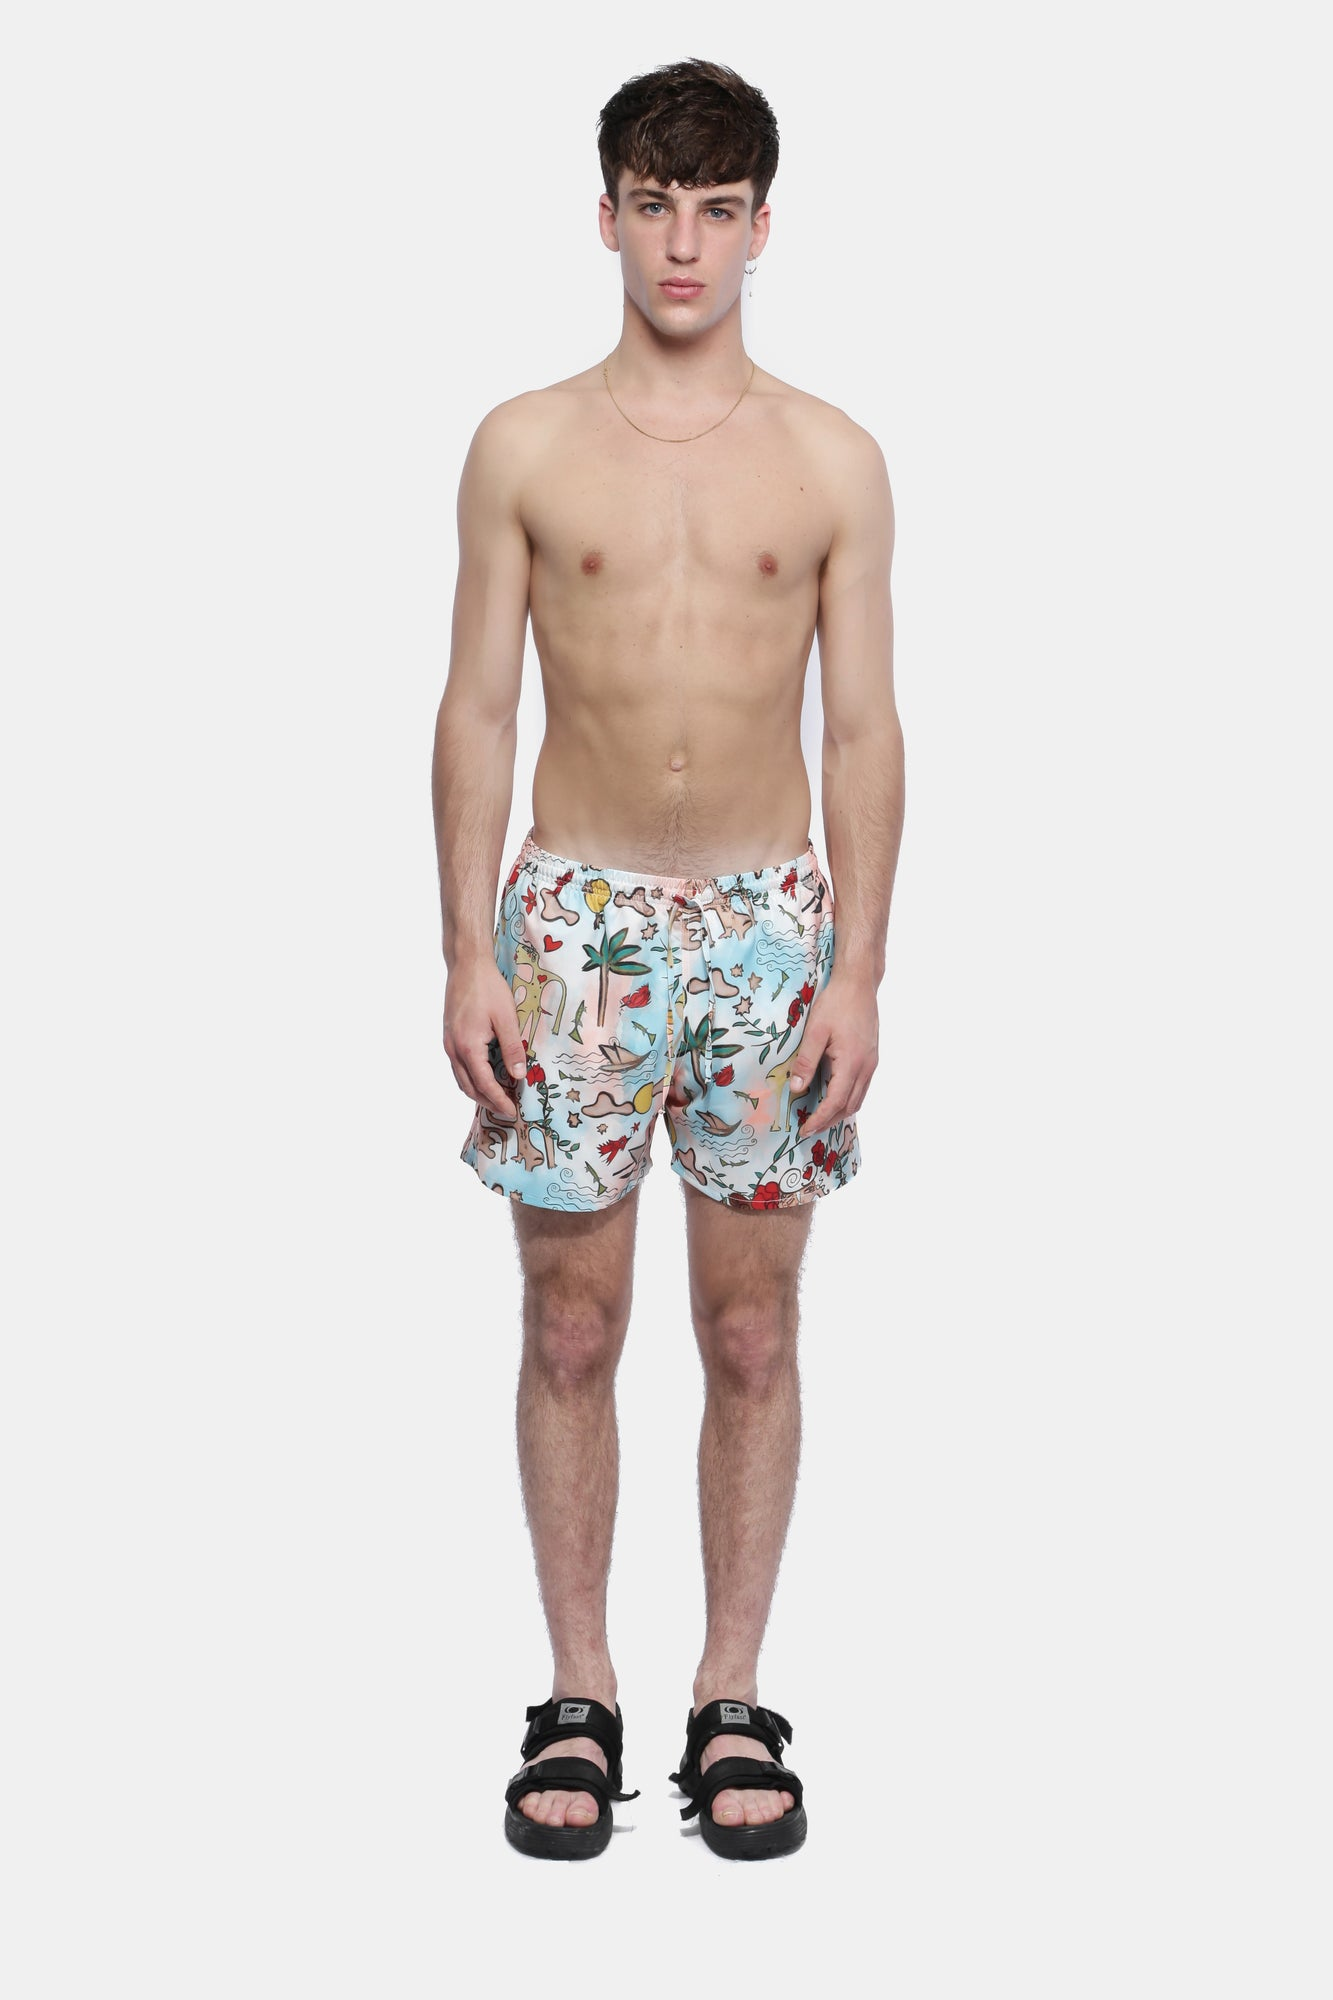 LOVE BY VALENTINO CORTAZAR SHORTS - Esteban Cortazar